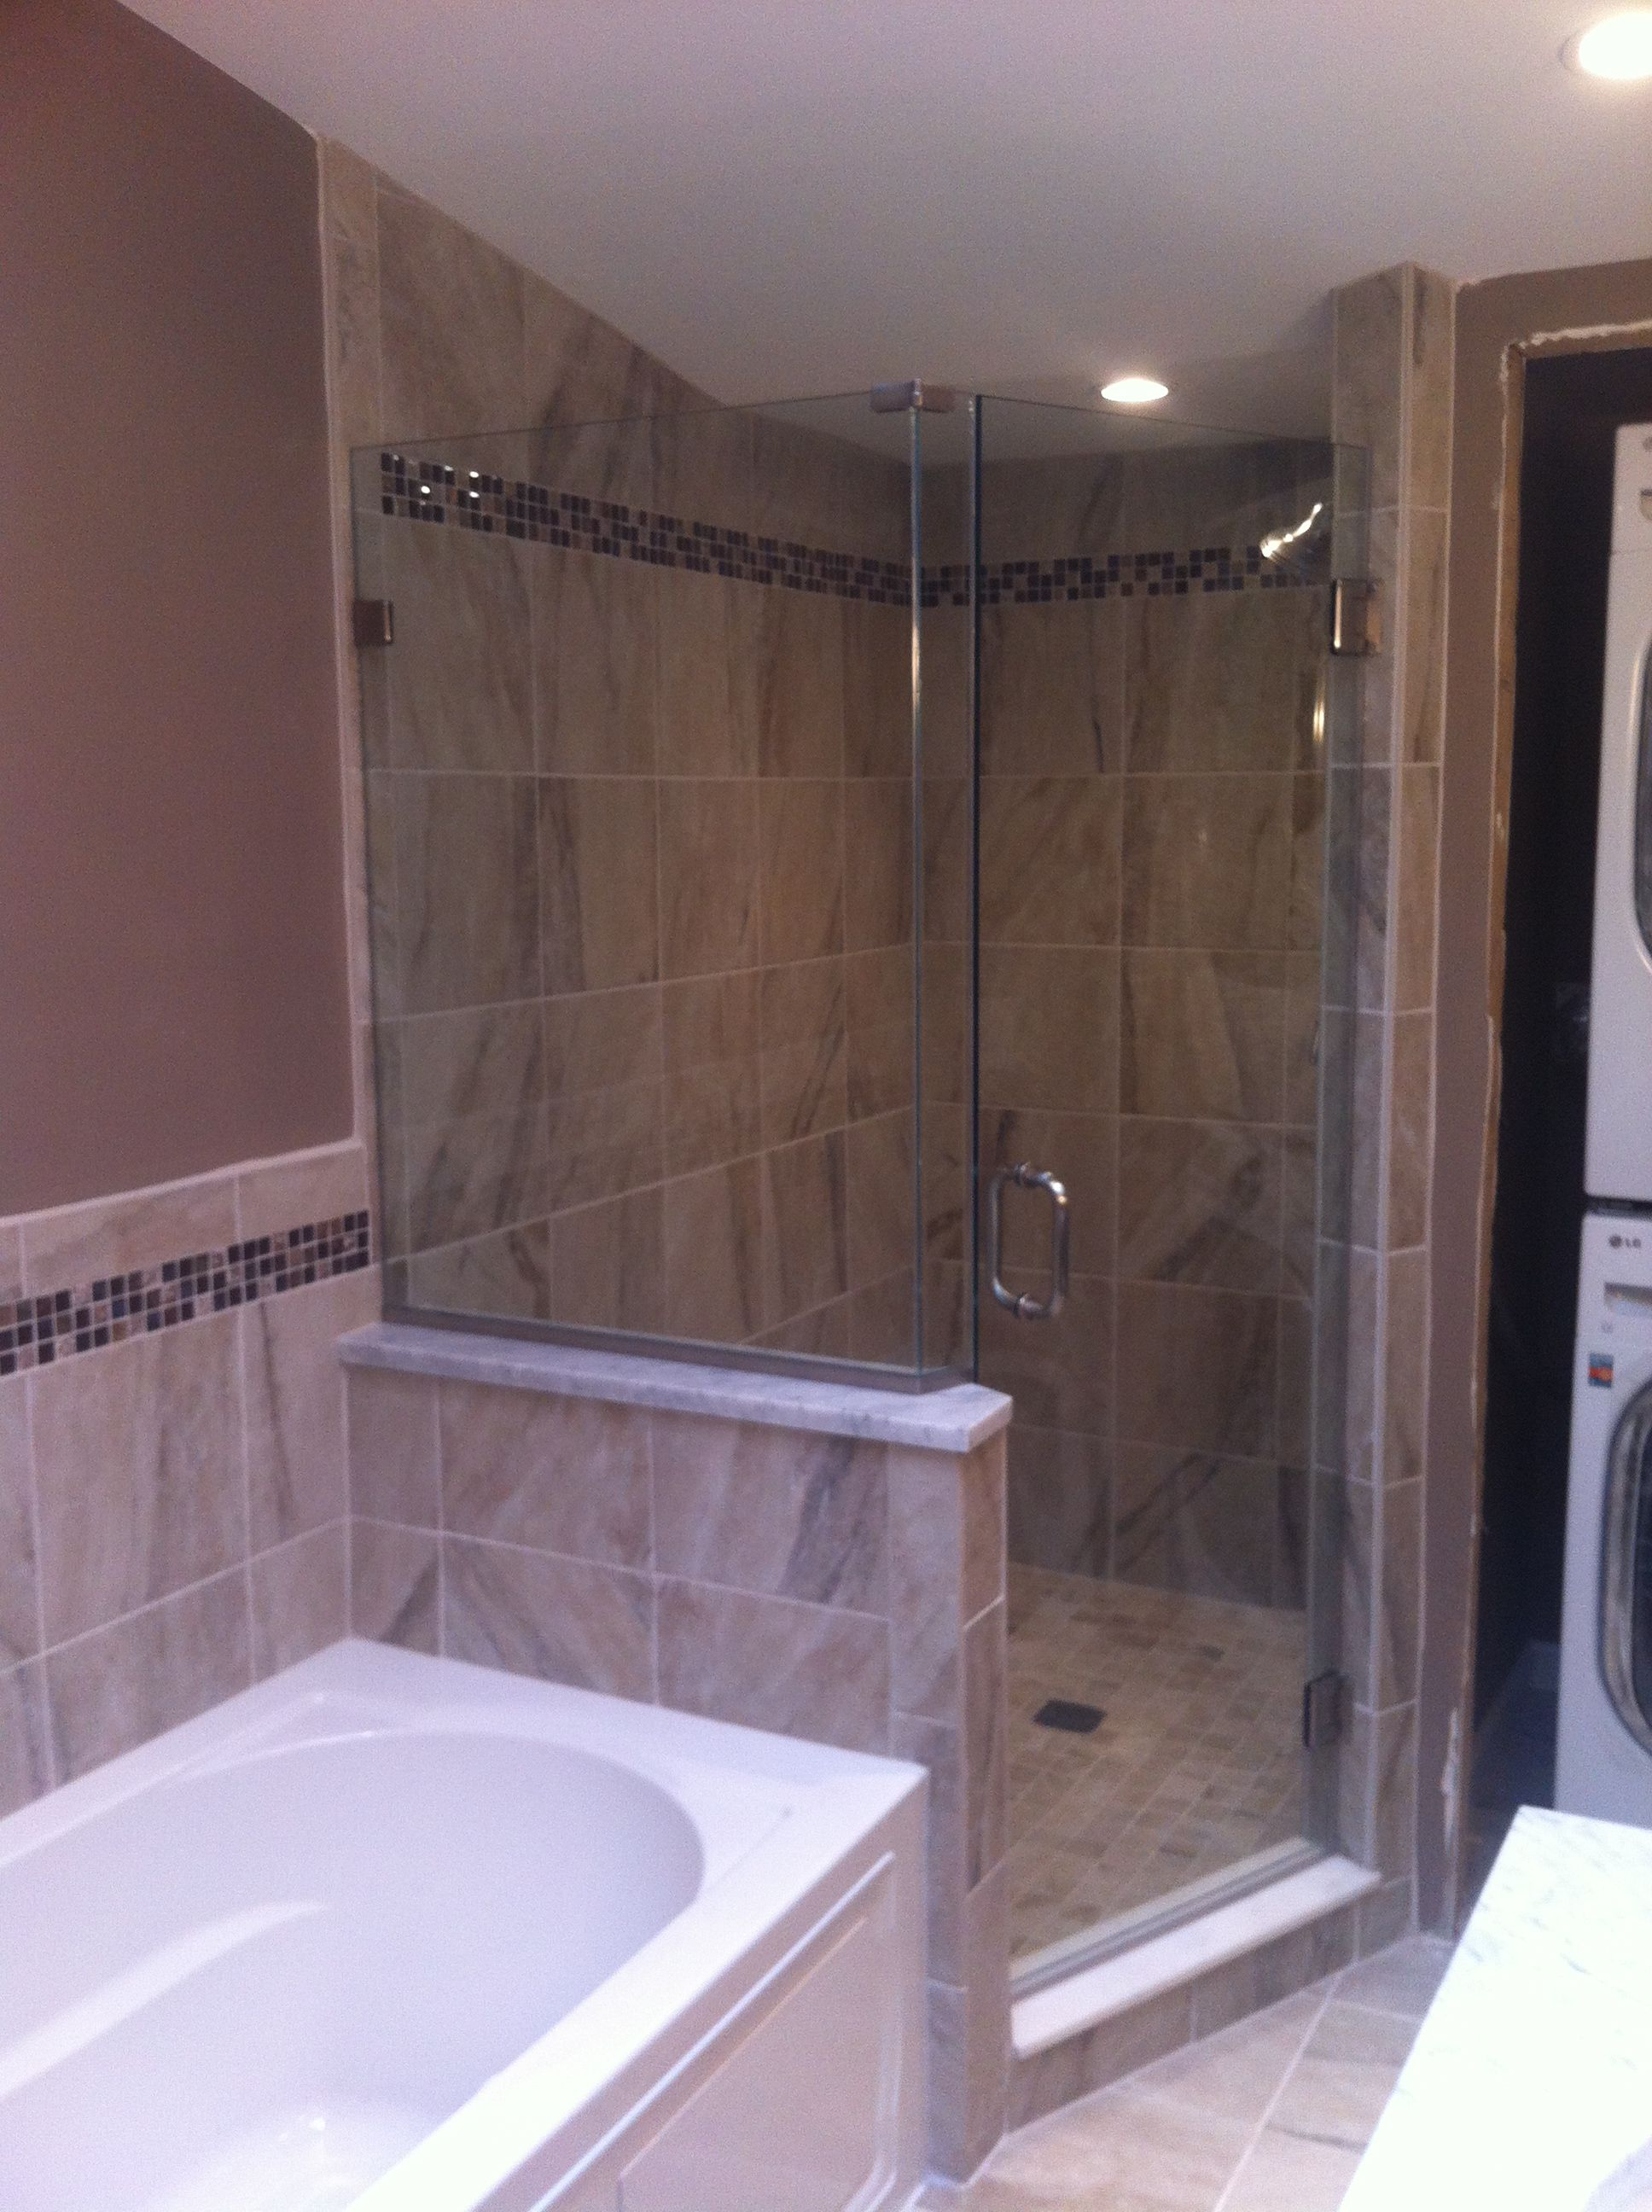 Cozy Bathroom With Delightful Neo Angle Shower: Bathtub With Neo ...